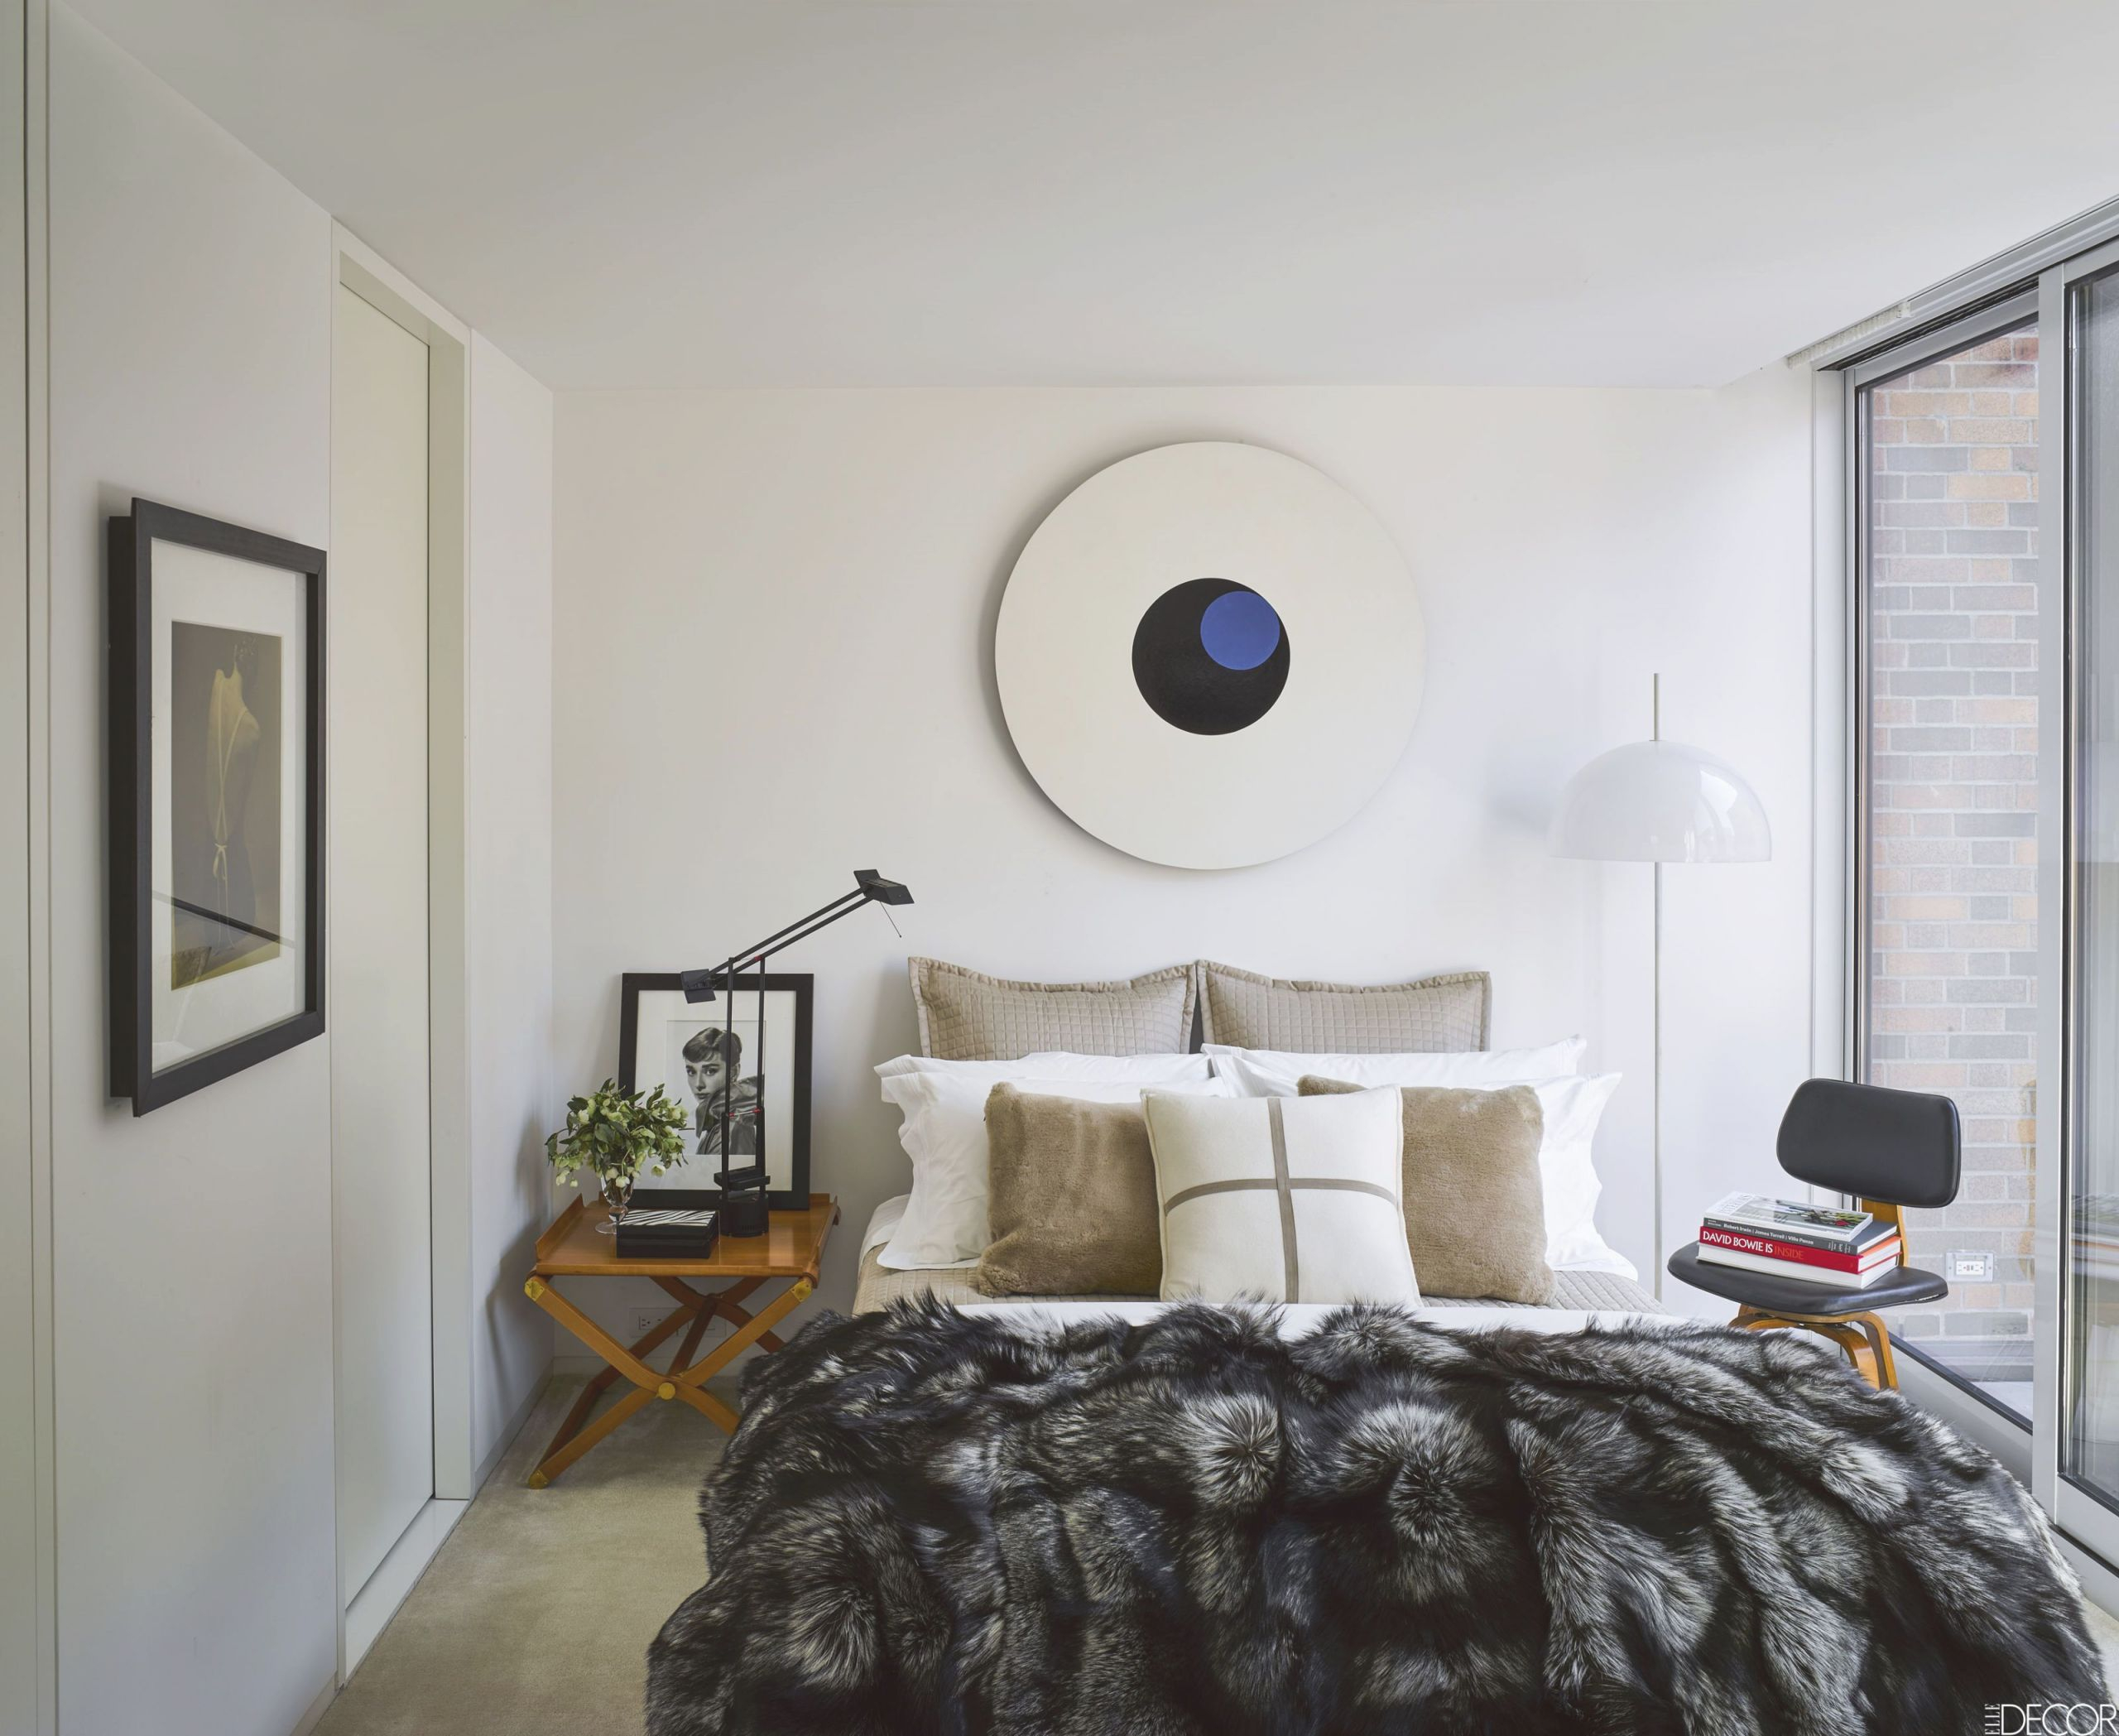 55 Small Bedroom Design Ideas – Decorating Tips For Small in Elegant Small Bedroom Decorating Ideas